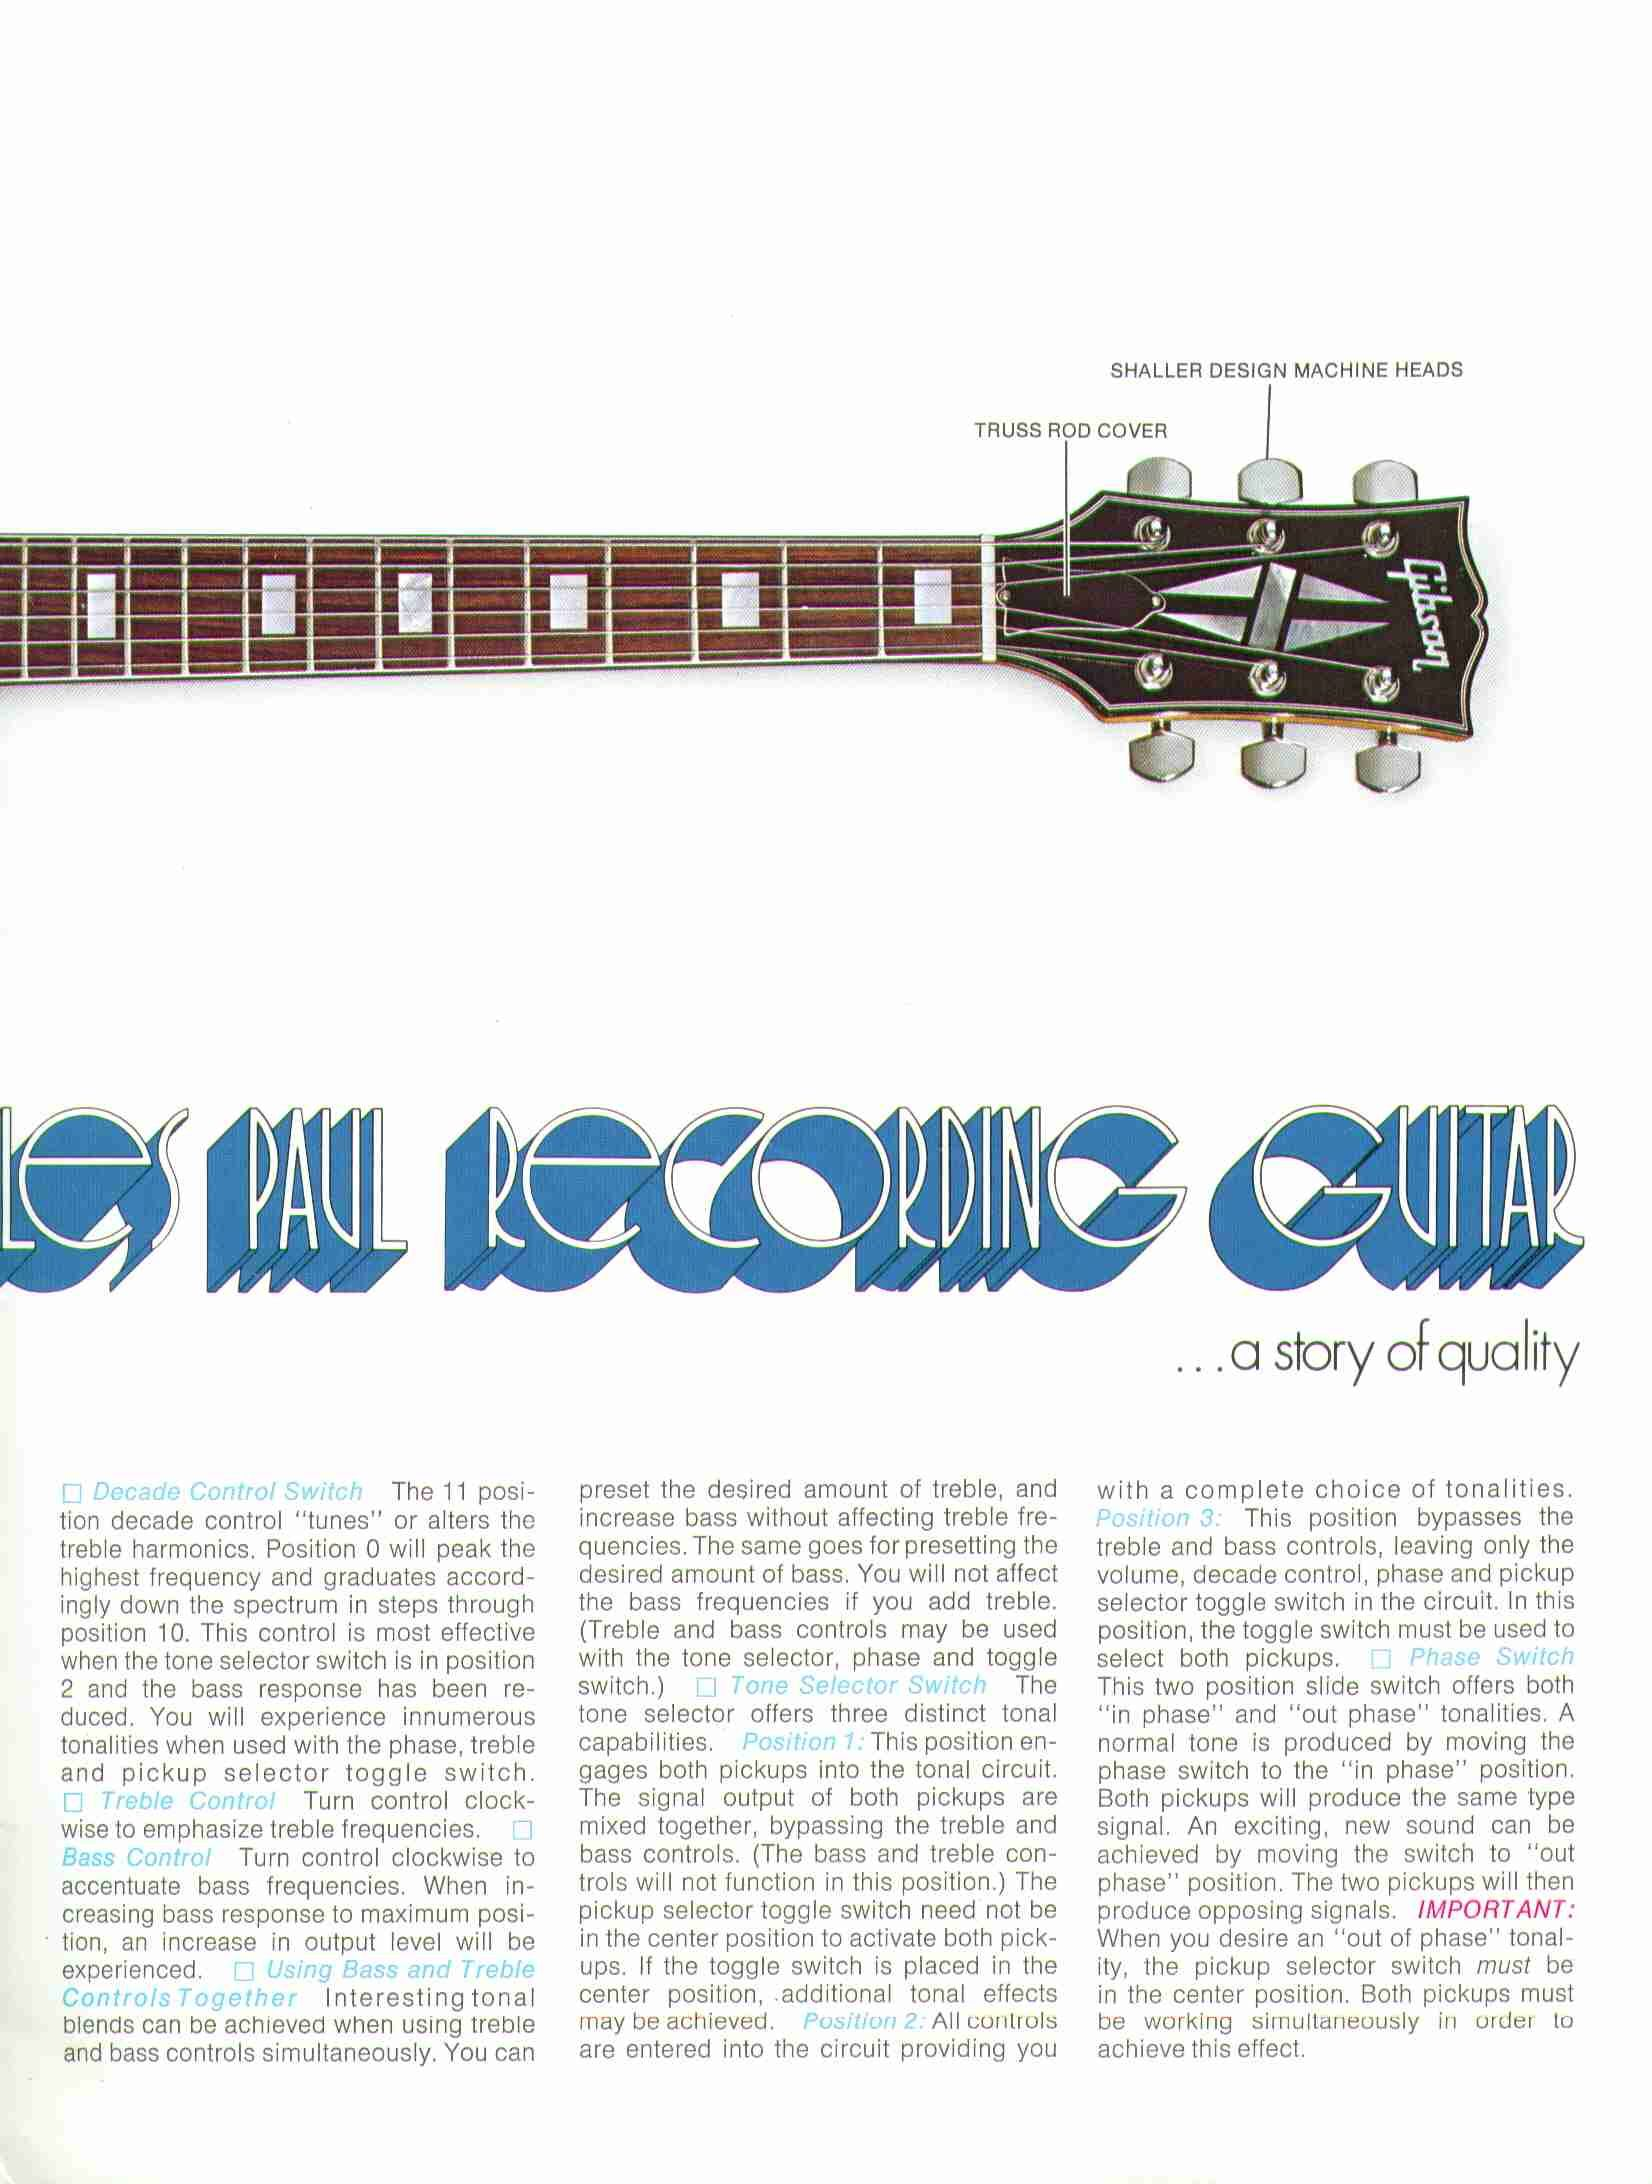 Sales flyer for Gibson Les Paul Recording